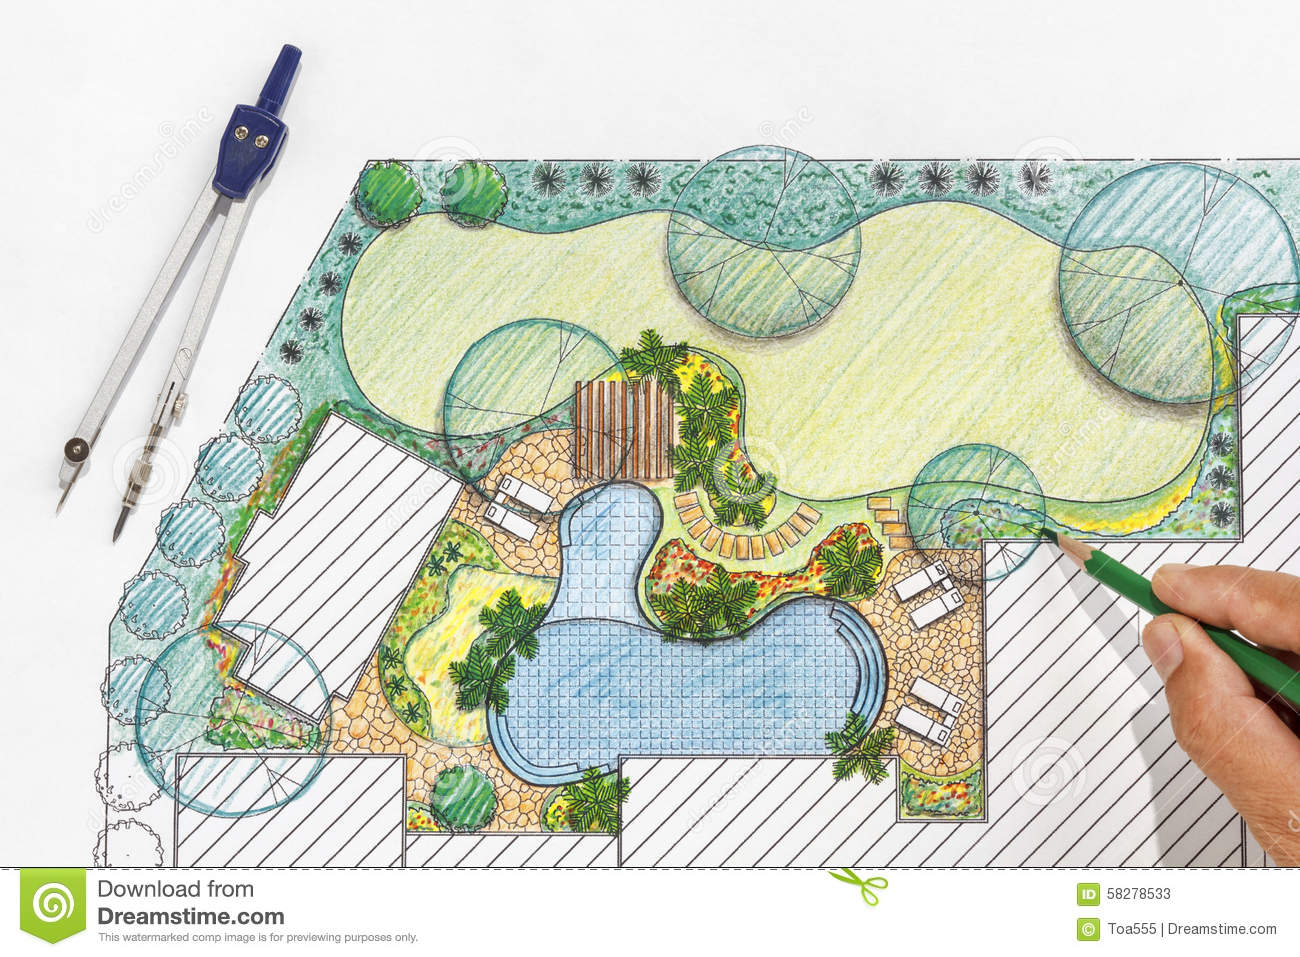 Landscape architect design backyard plan for villa stock for Landscape garden design plans